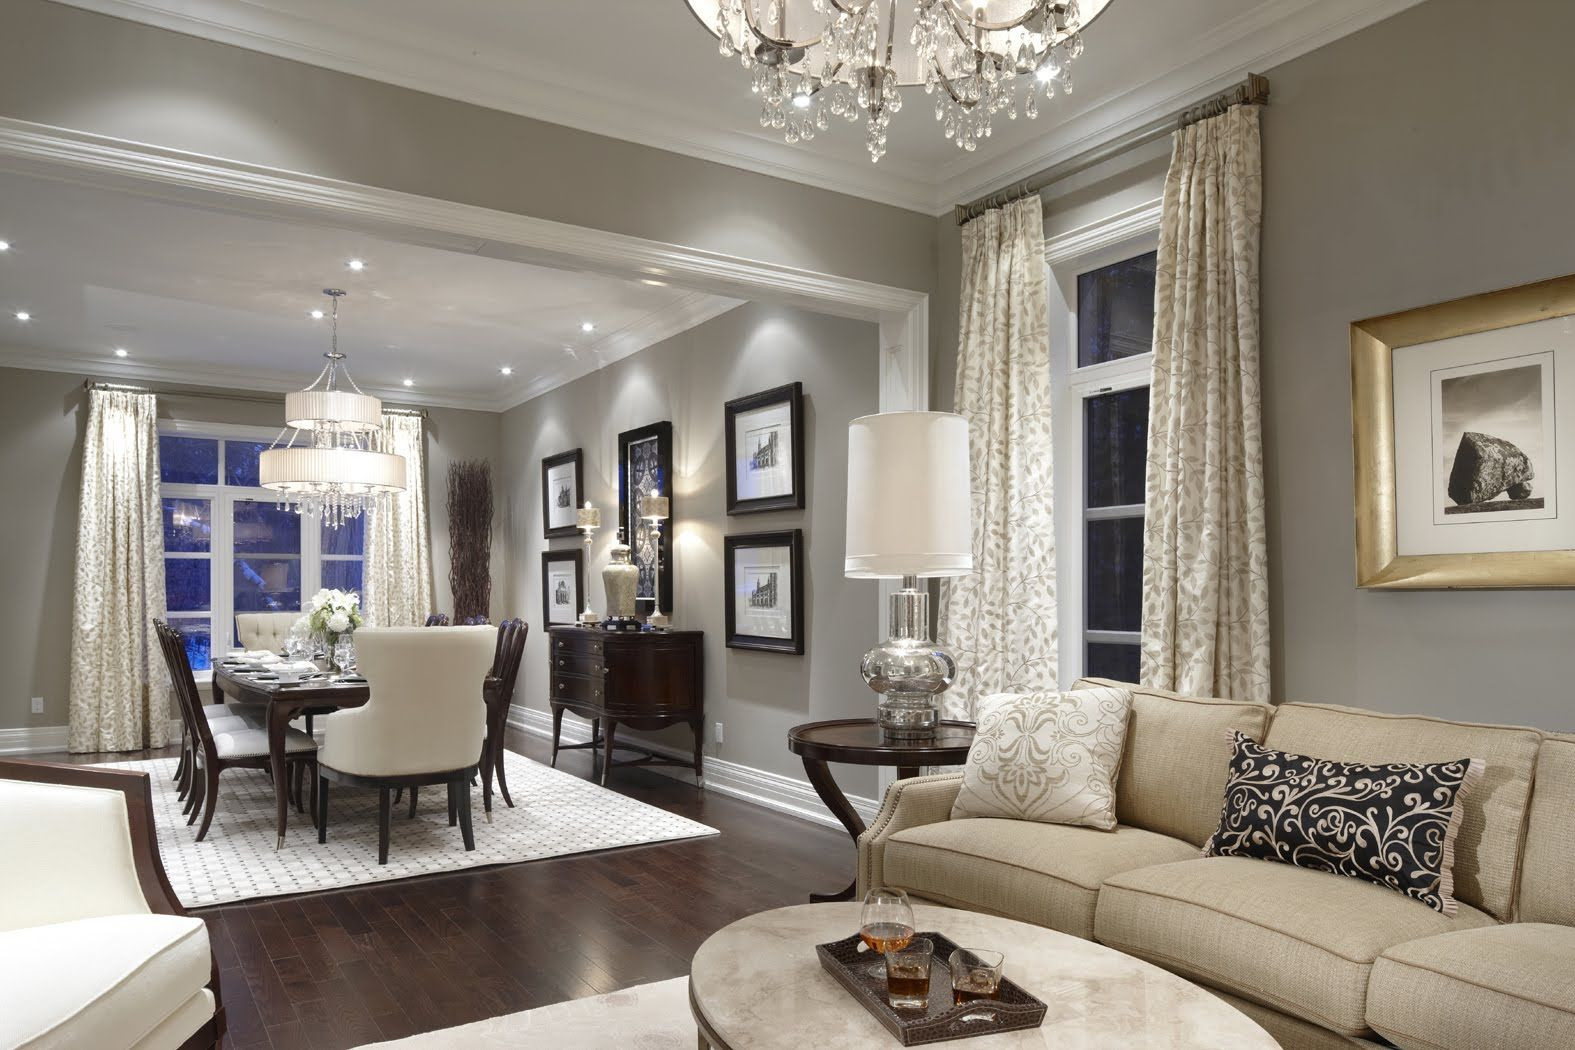 somerset hardwood flooring care of benjamin moore colors for your living room decor livingroom ideas for a traditional living room with medium tone hardwood floors a traditional living room with medium tone hardwood floors